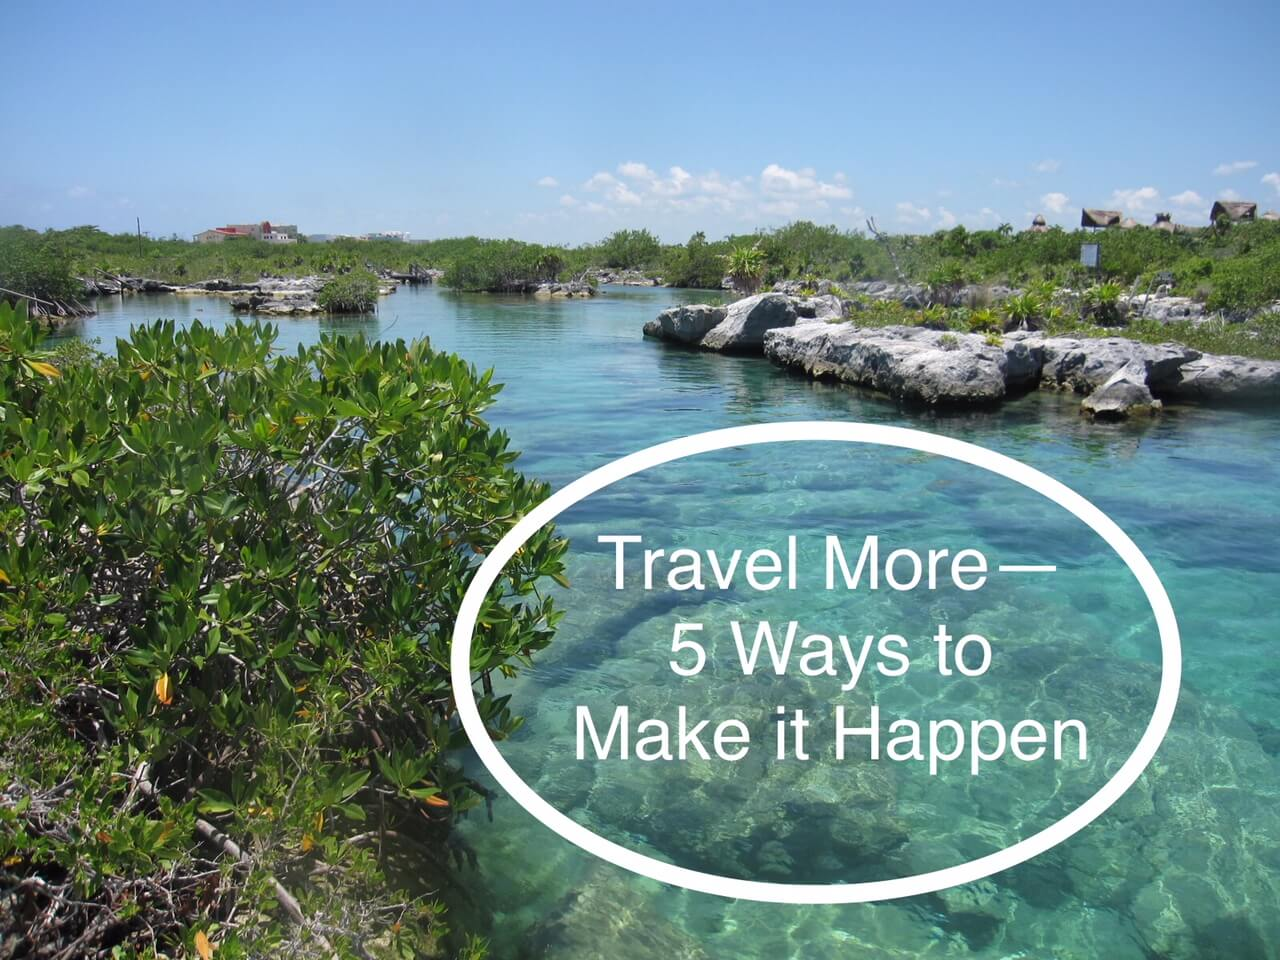 Travel More–5 Ways to Make It Happen